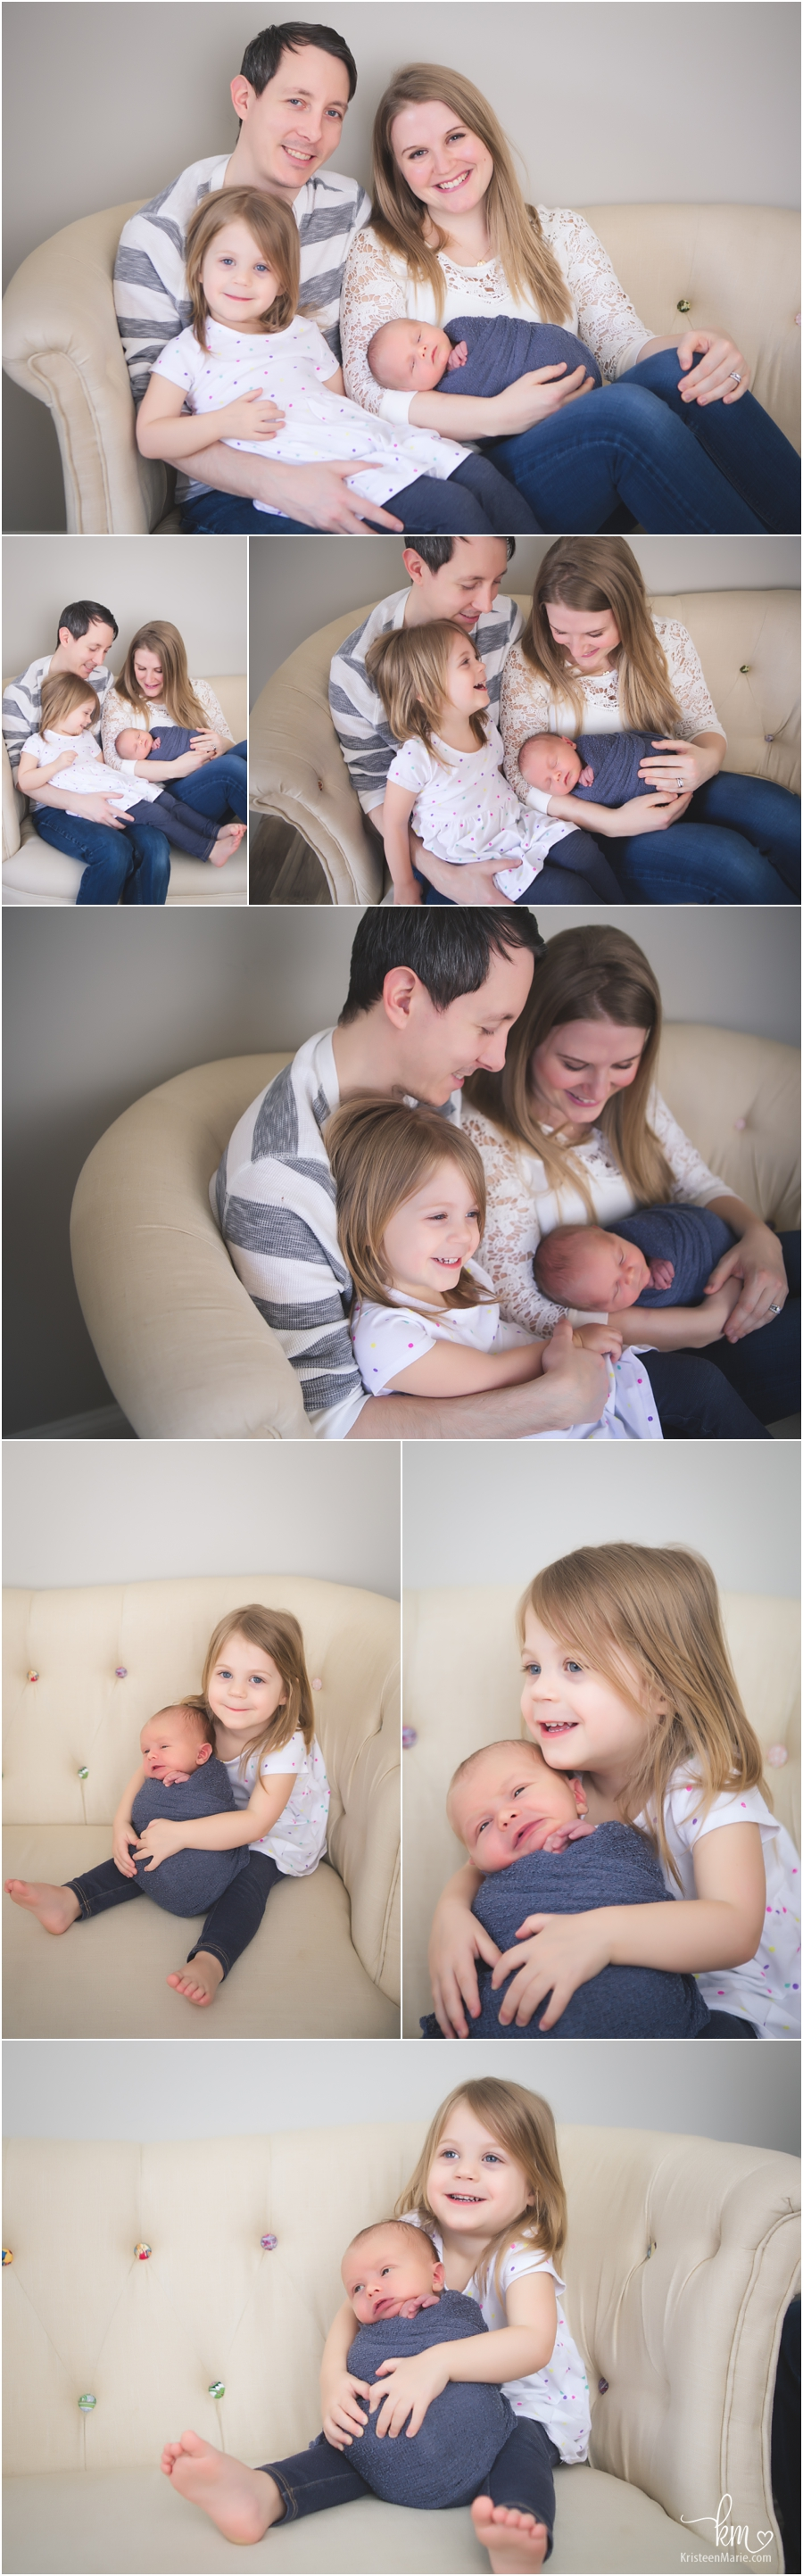 Fishers family with newborn baby in photography studio